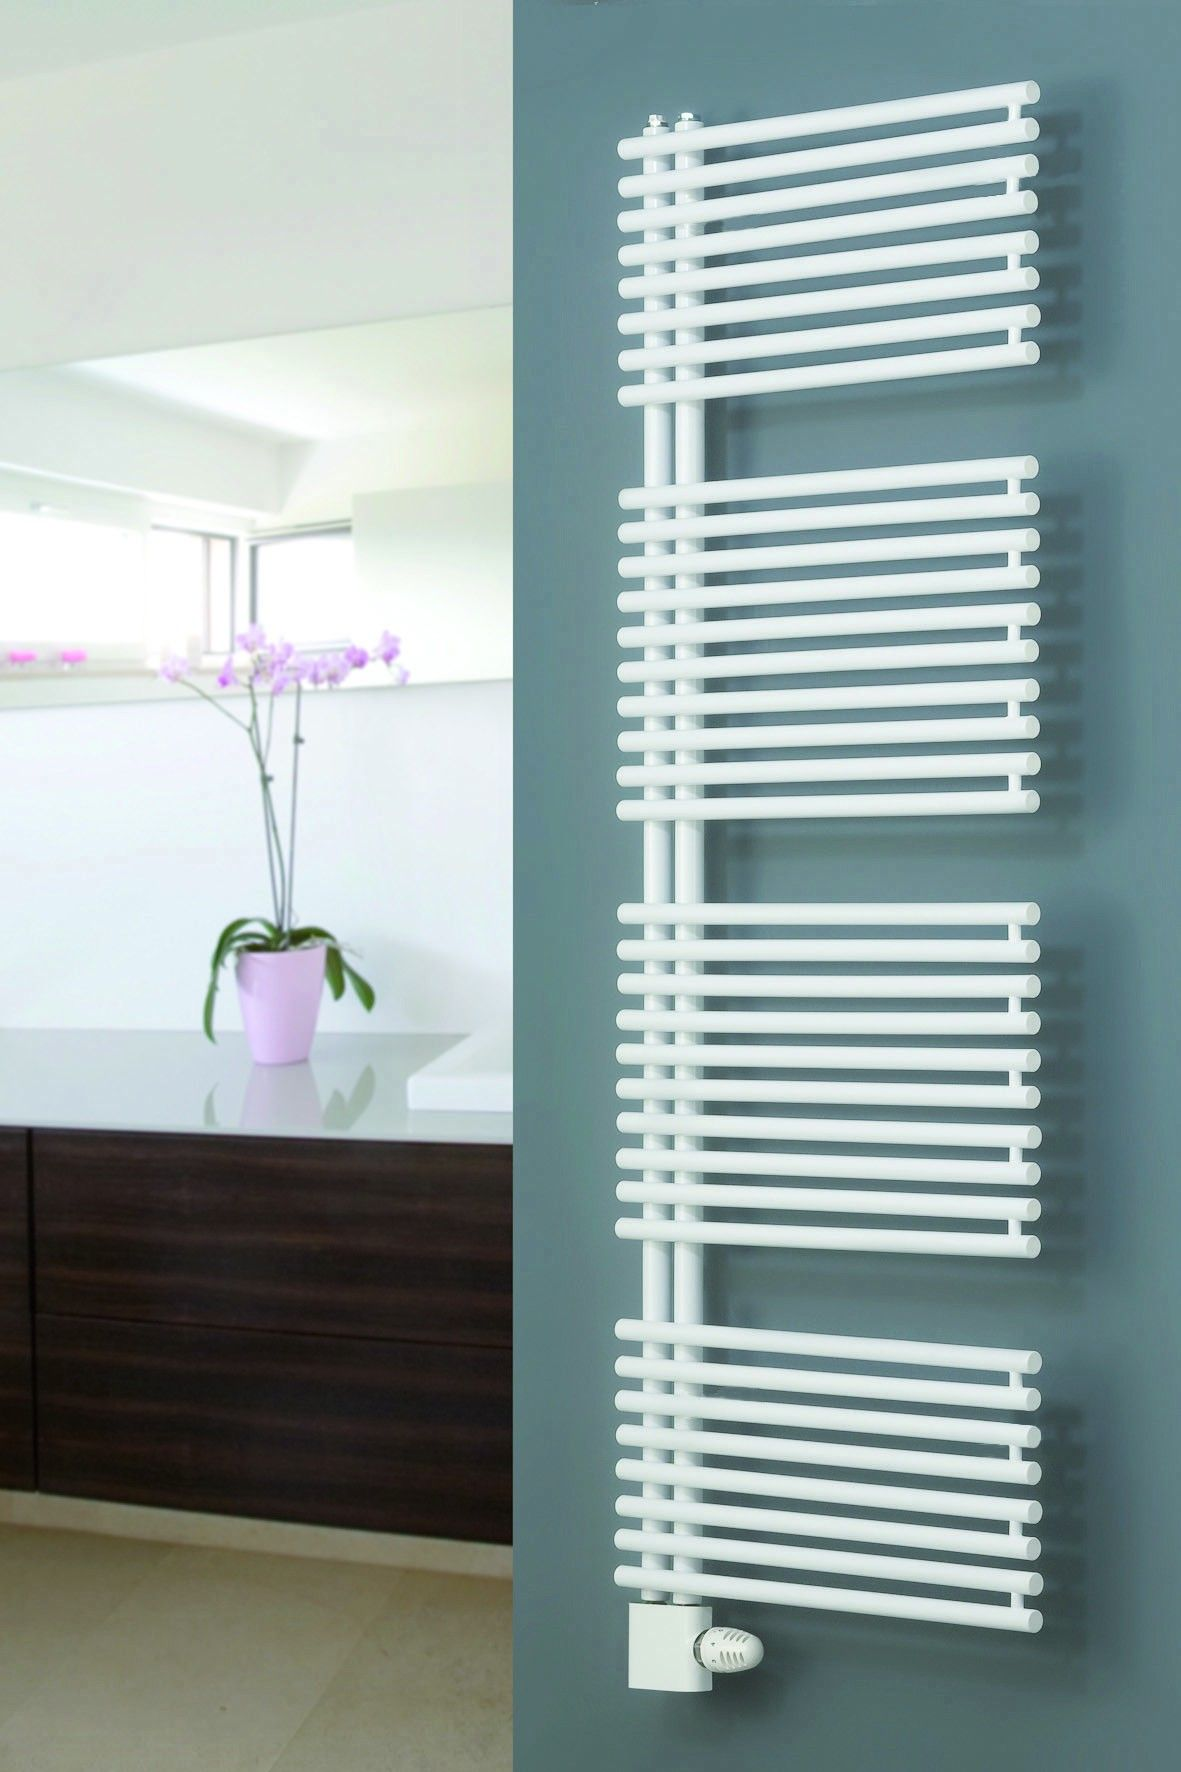 Heizkörper Bad Design Badheizkörper 1600 X 500 Mm 833 Watt Bad Towel Rail Bathroom